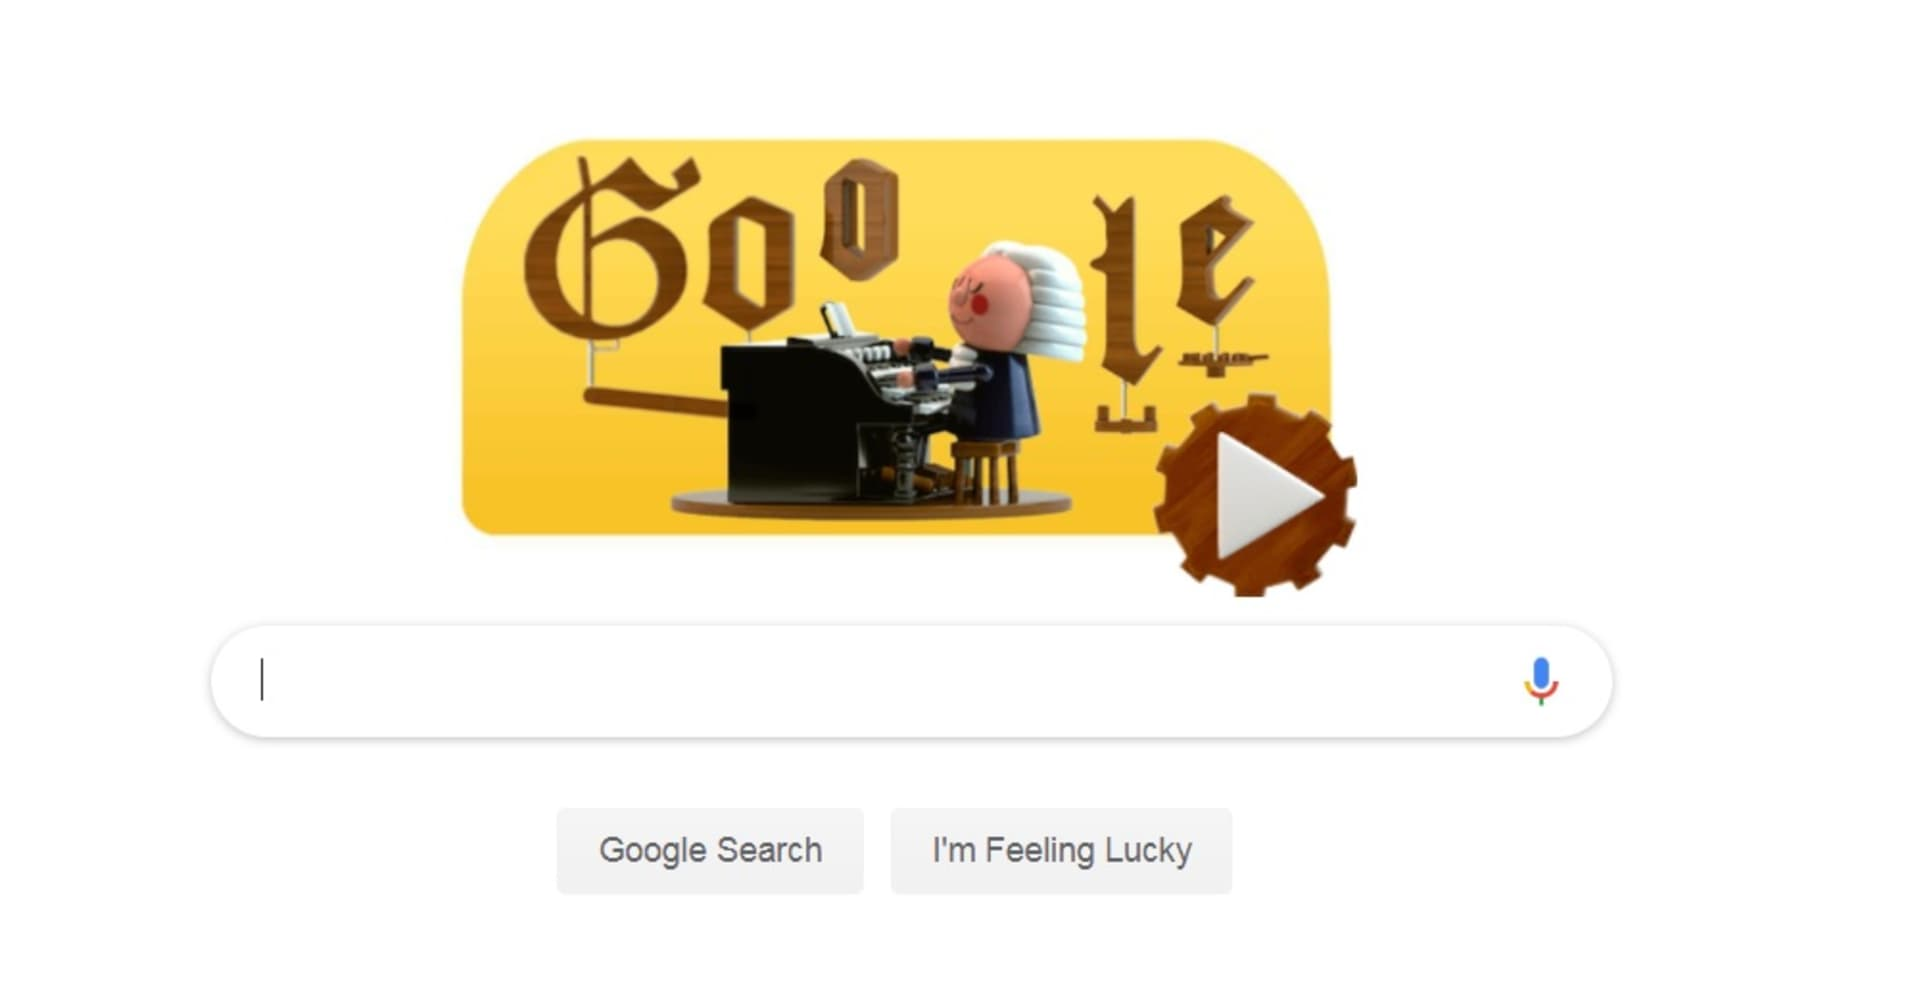 Make music that sounds like Bach with the first Google Doodle, which